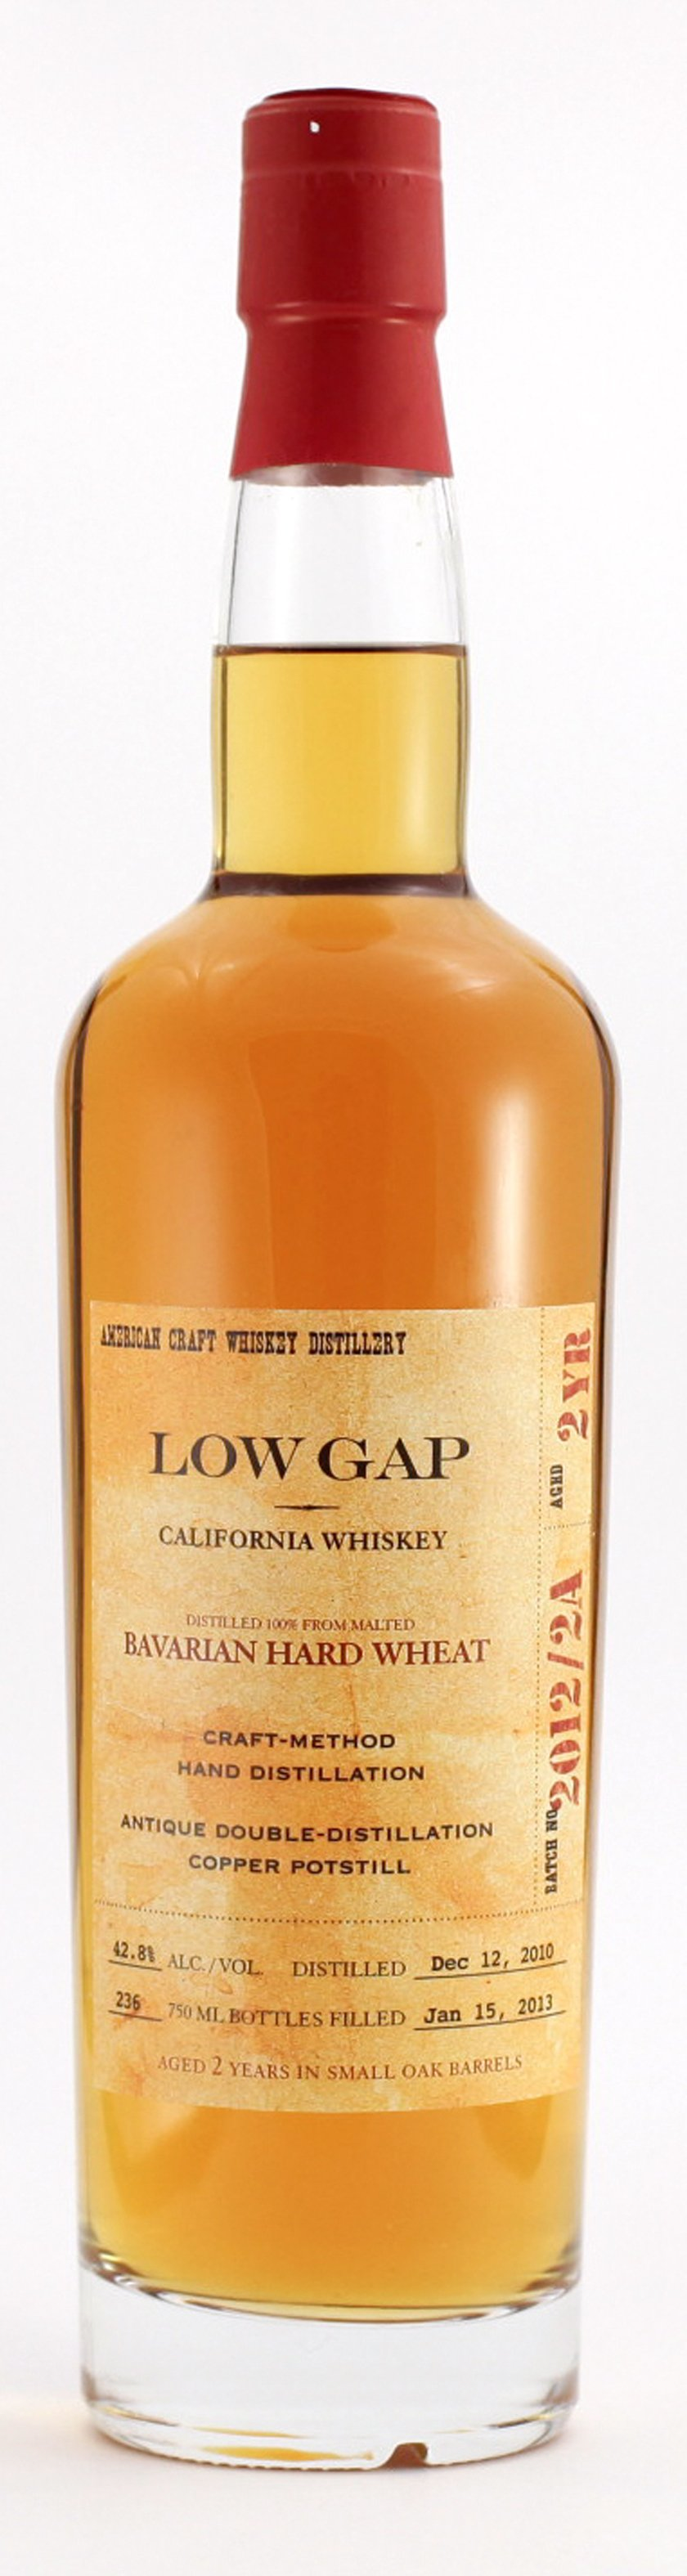 Low Gap California Wheat Whiskey 2 Years Old